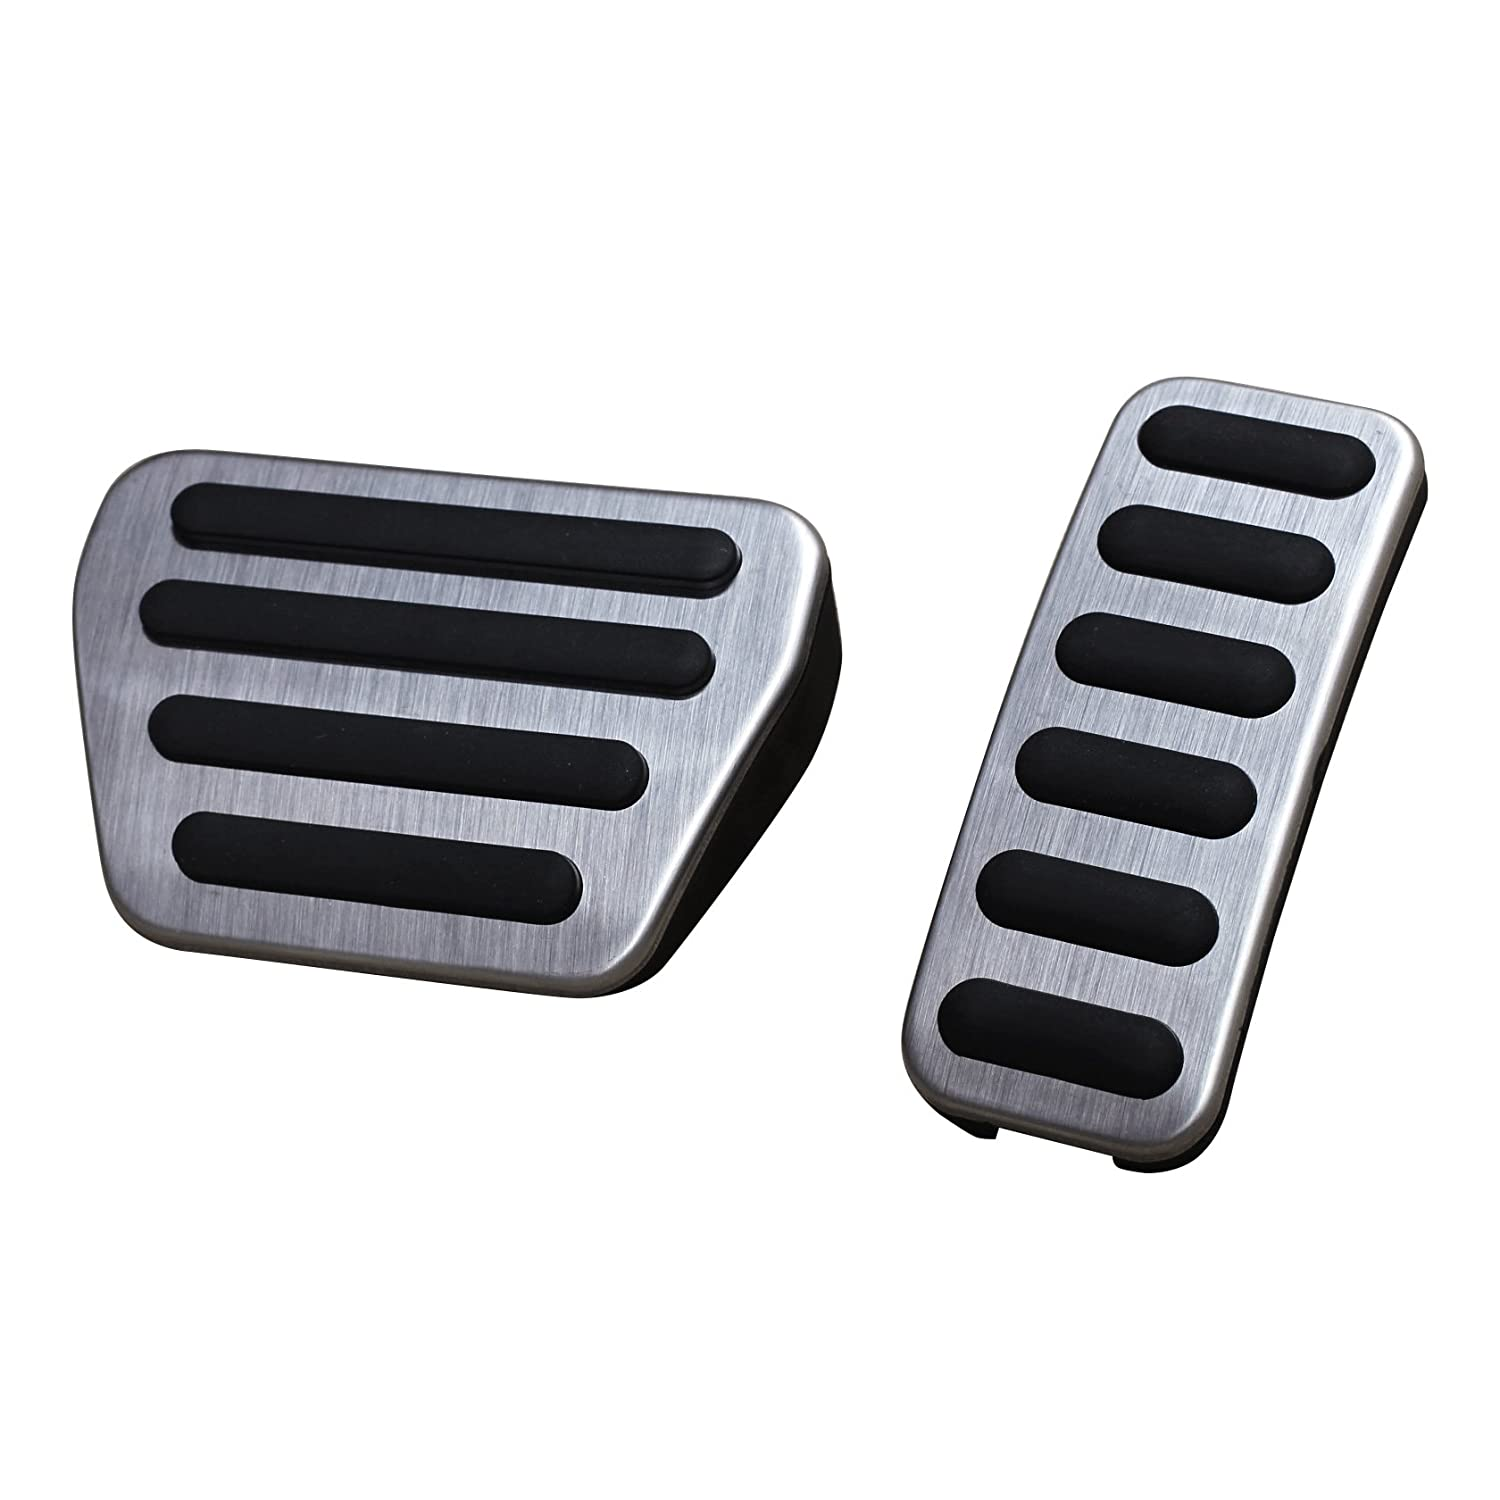 AutoBig Gas Pedal Cover for Range Rover Sport 2014+ Land Rover Discovery 5 Brake pad Accessories